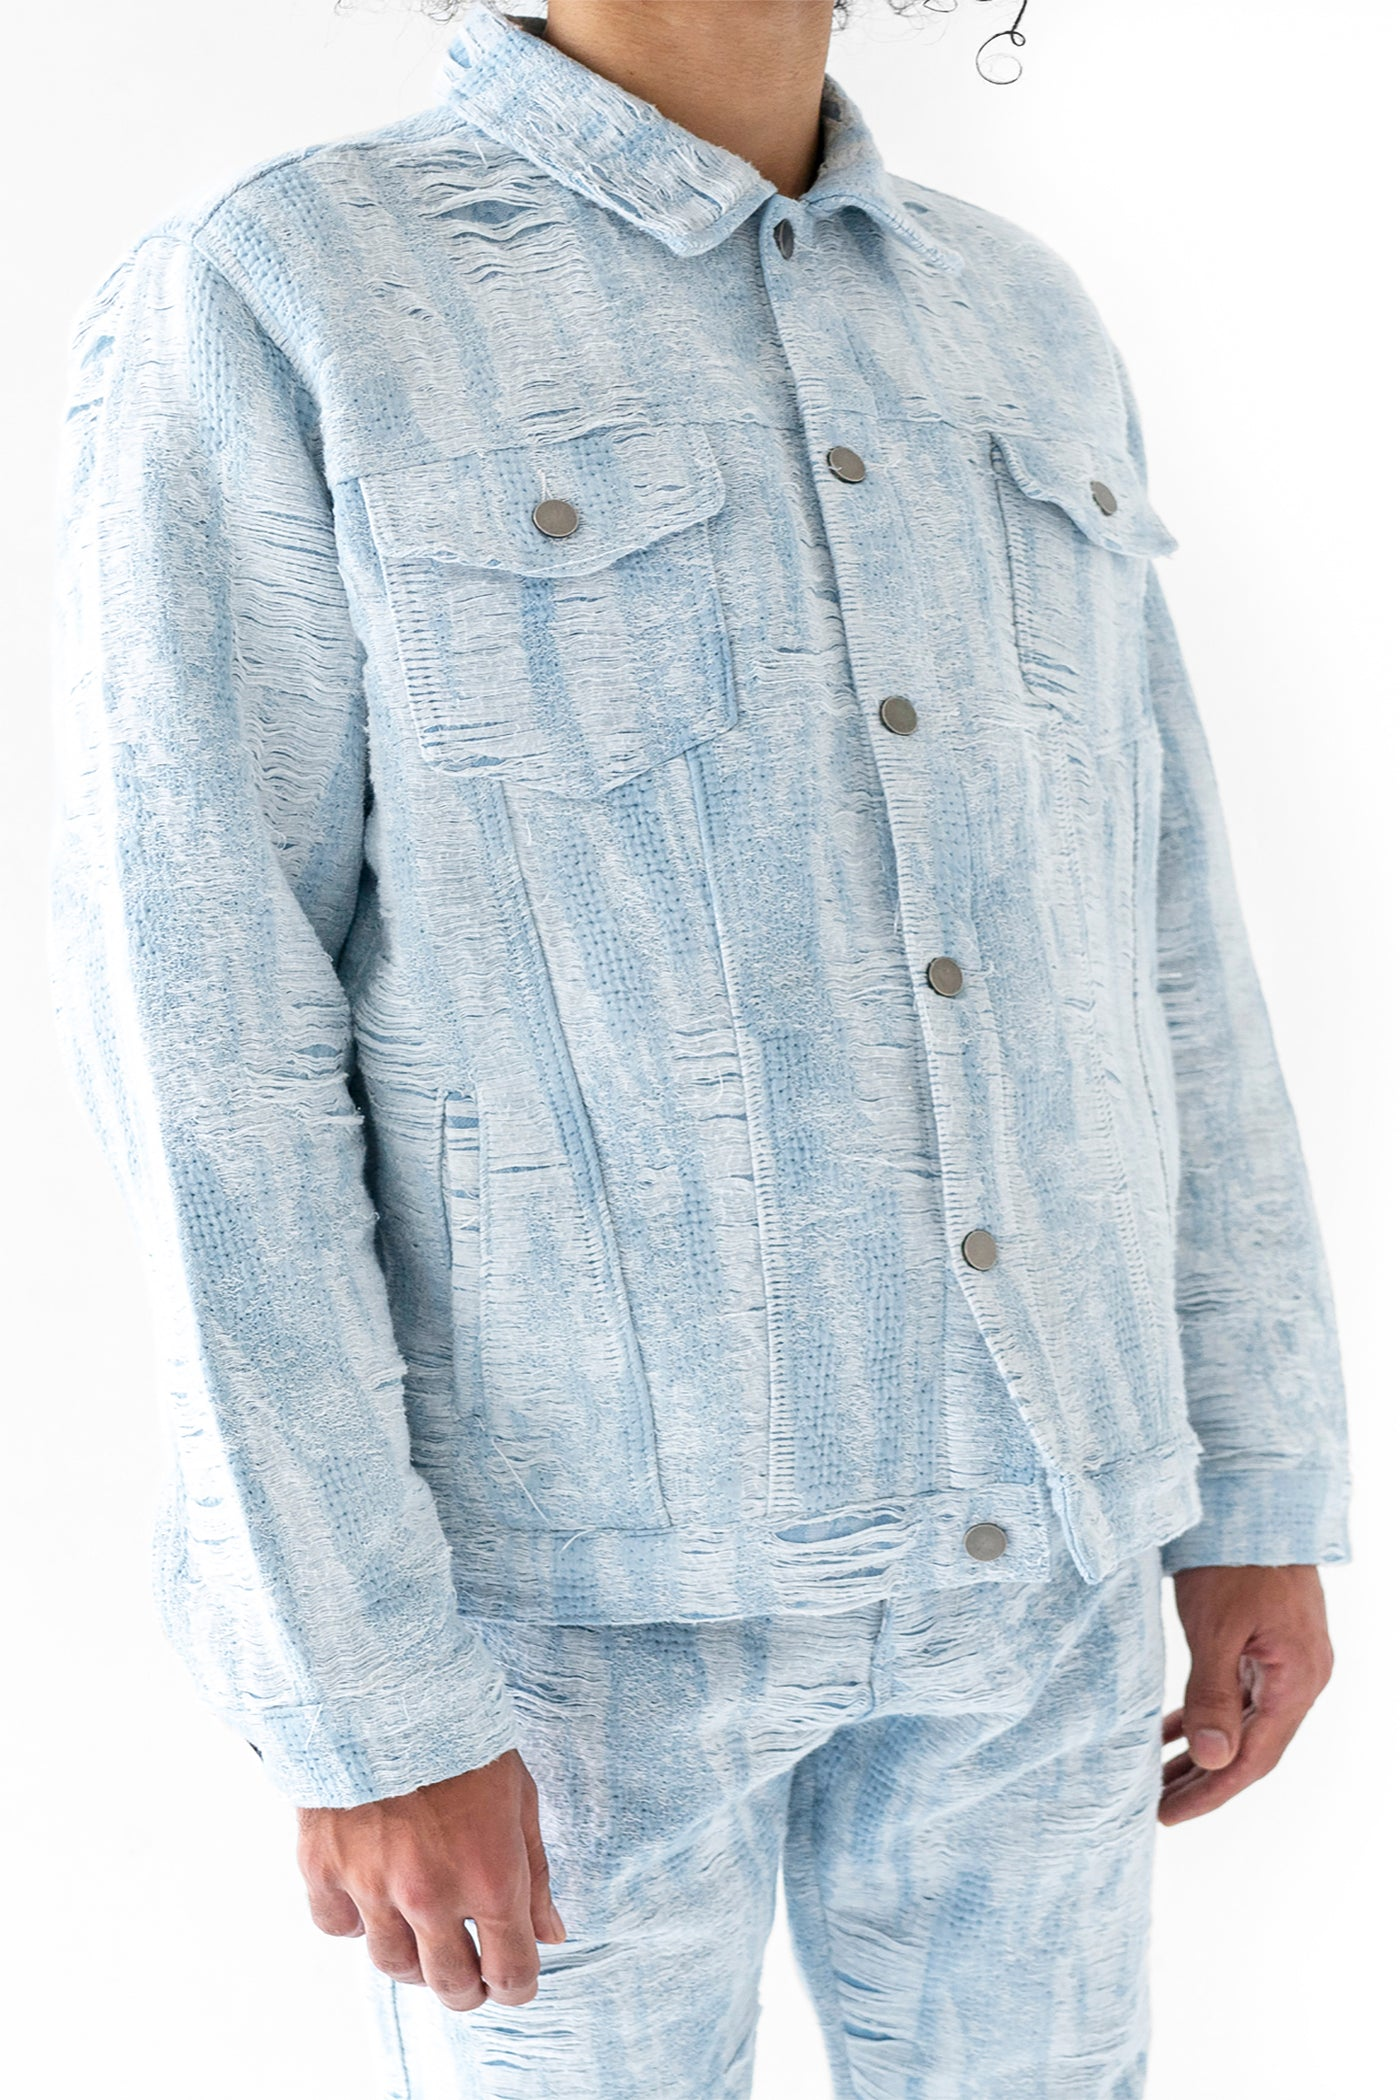 DISTRESSED STORM TRUCKER JACKET